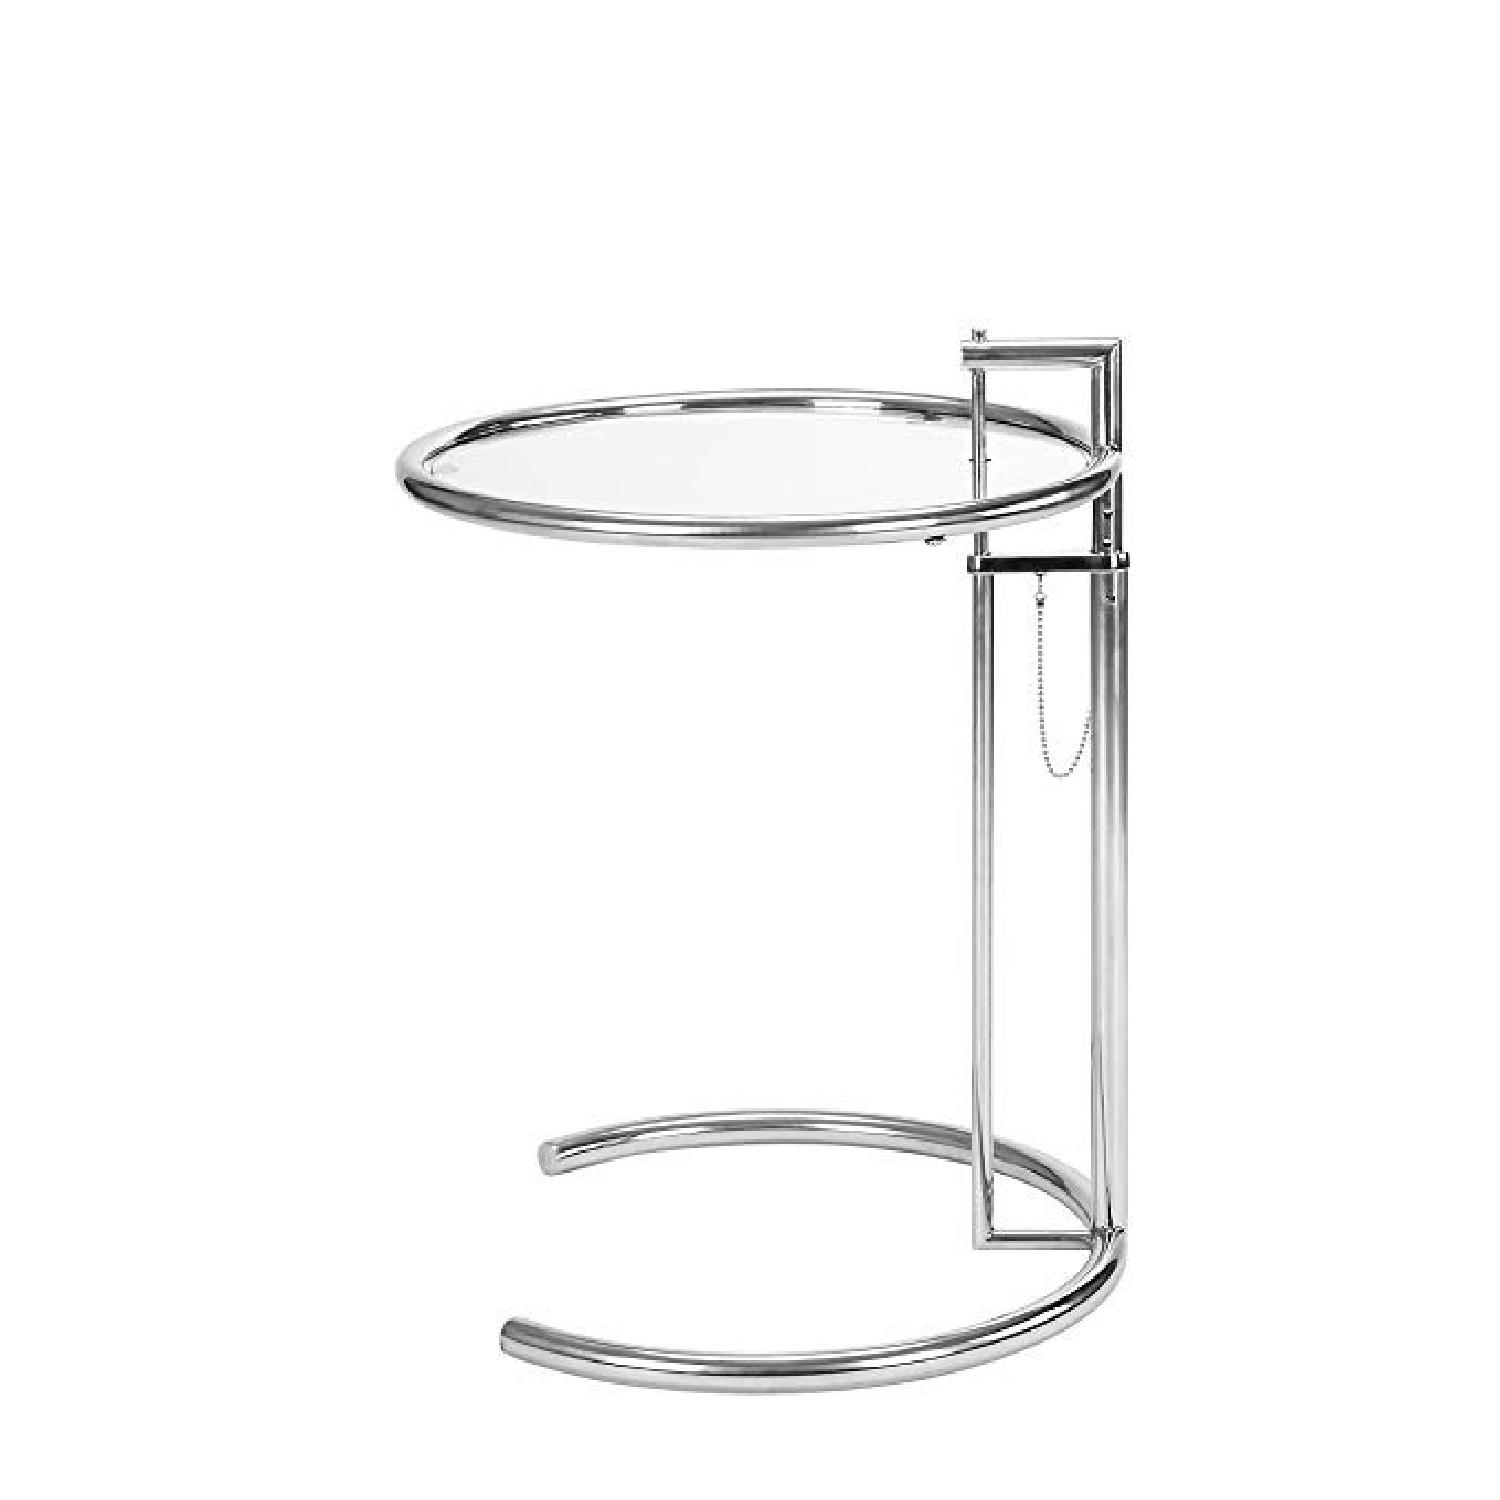 Eileen Gray Replica SIde Table in Silver - image-0